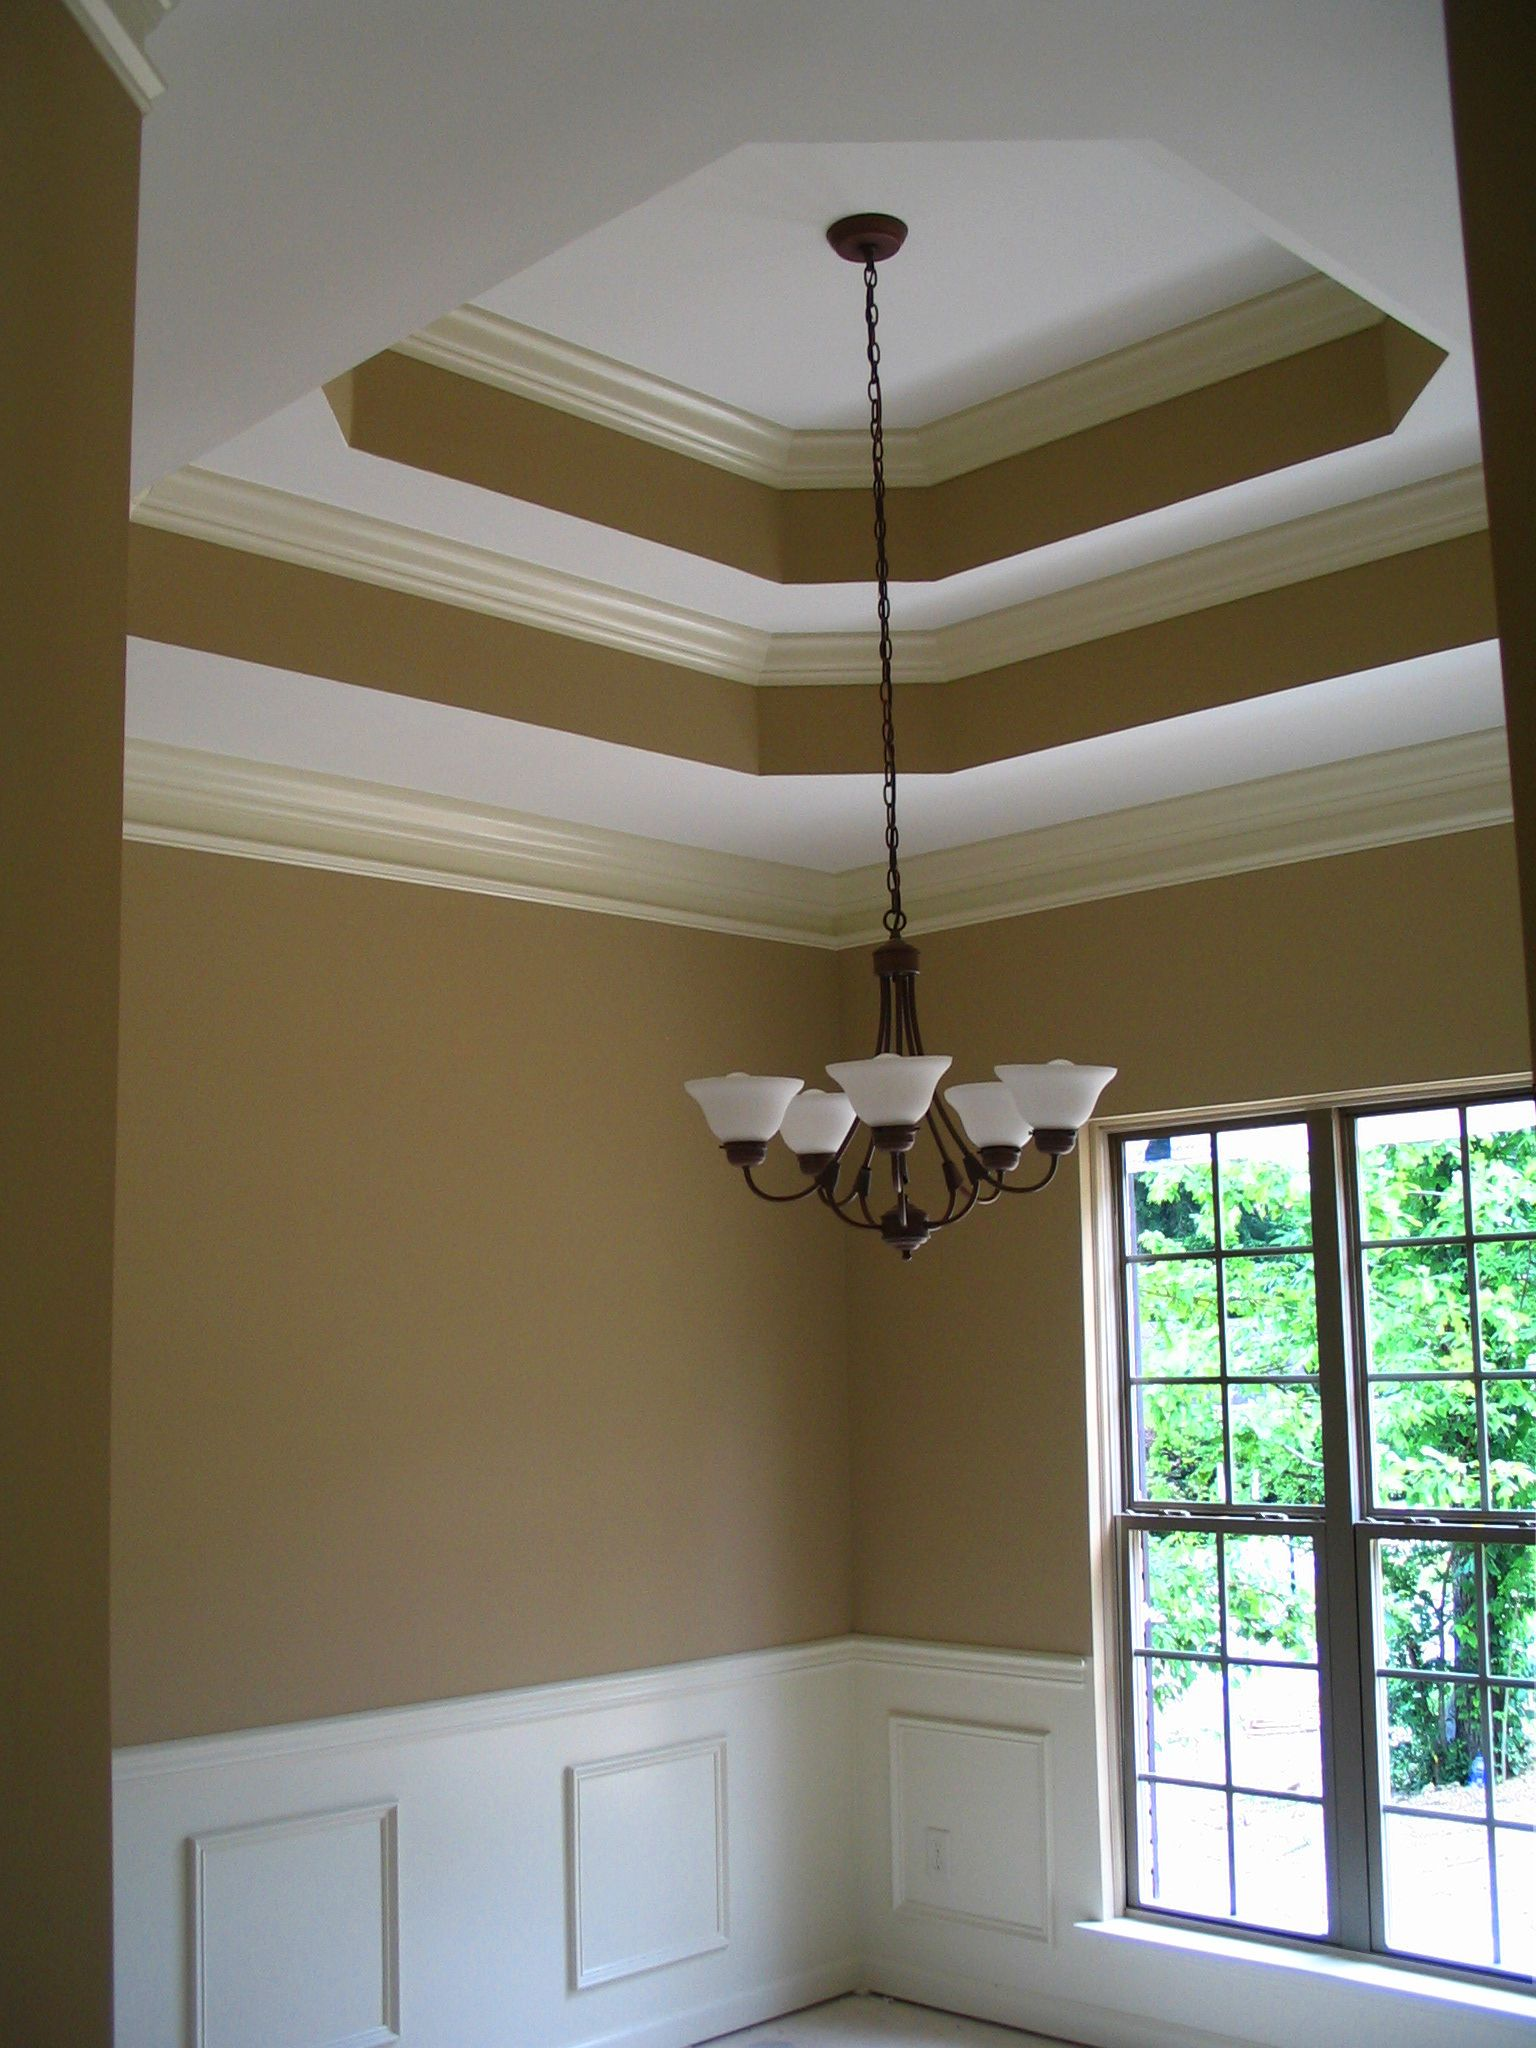 Bedroom Ceiling Moulding Double Tray Ceiling With Crown Moulding Larger Molding On